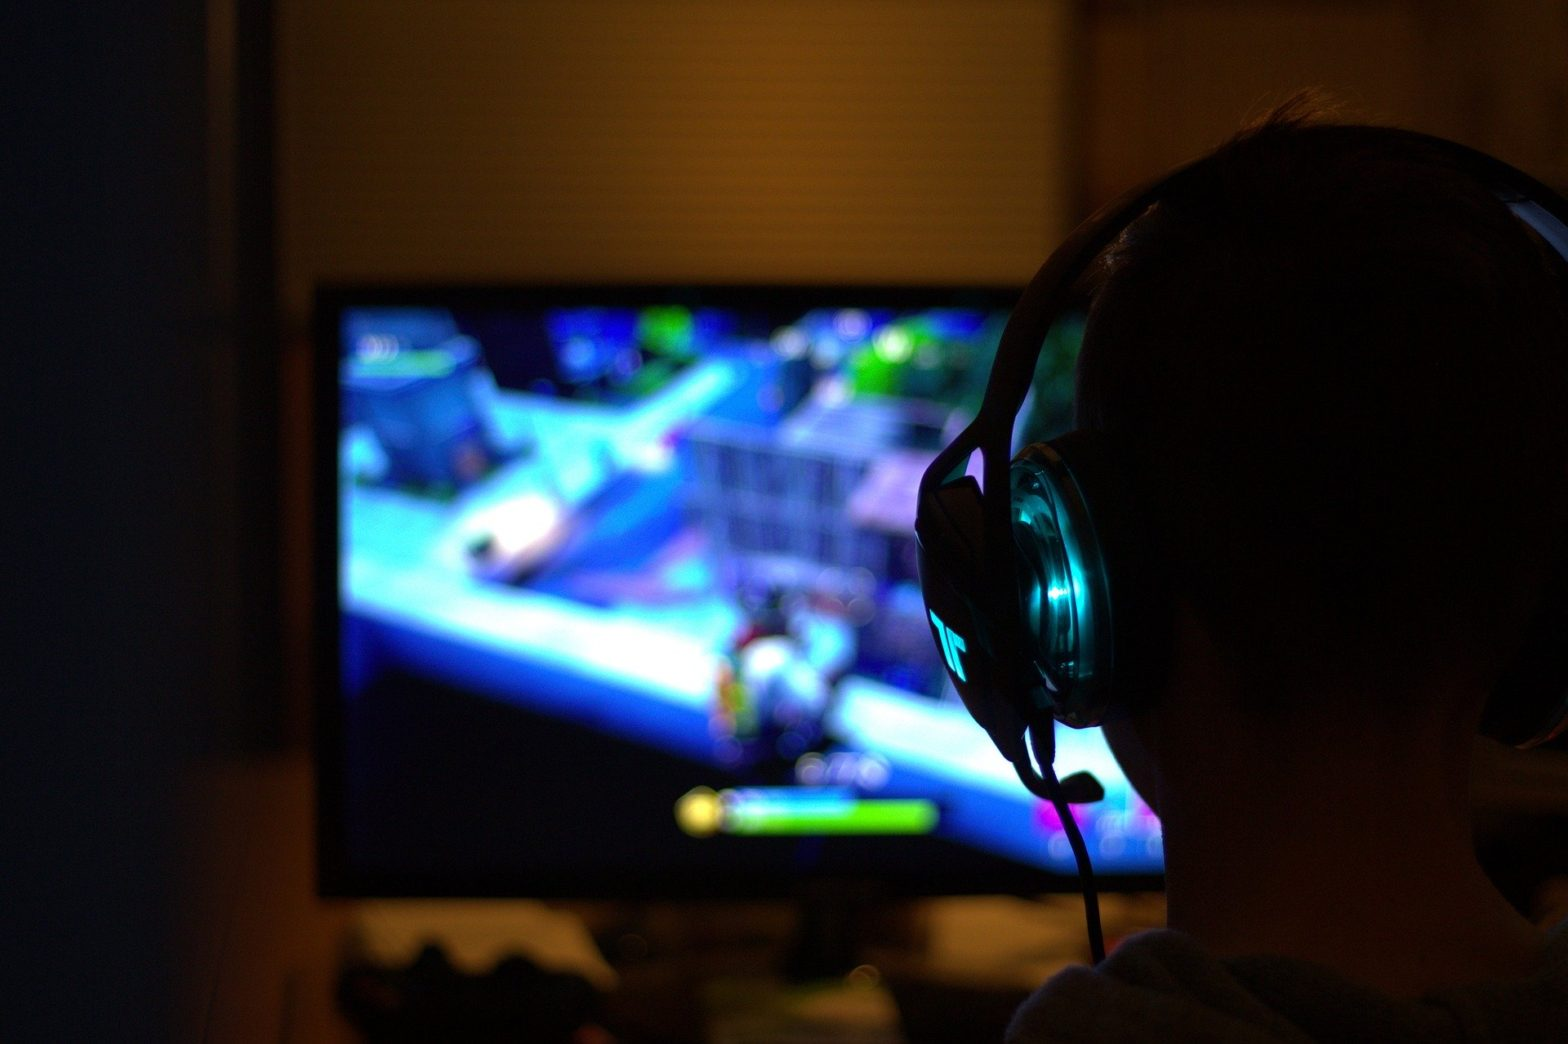 121 FIFM - How Multiplayer Online Video Games Teach You to be a Massive Consumer